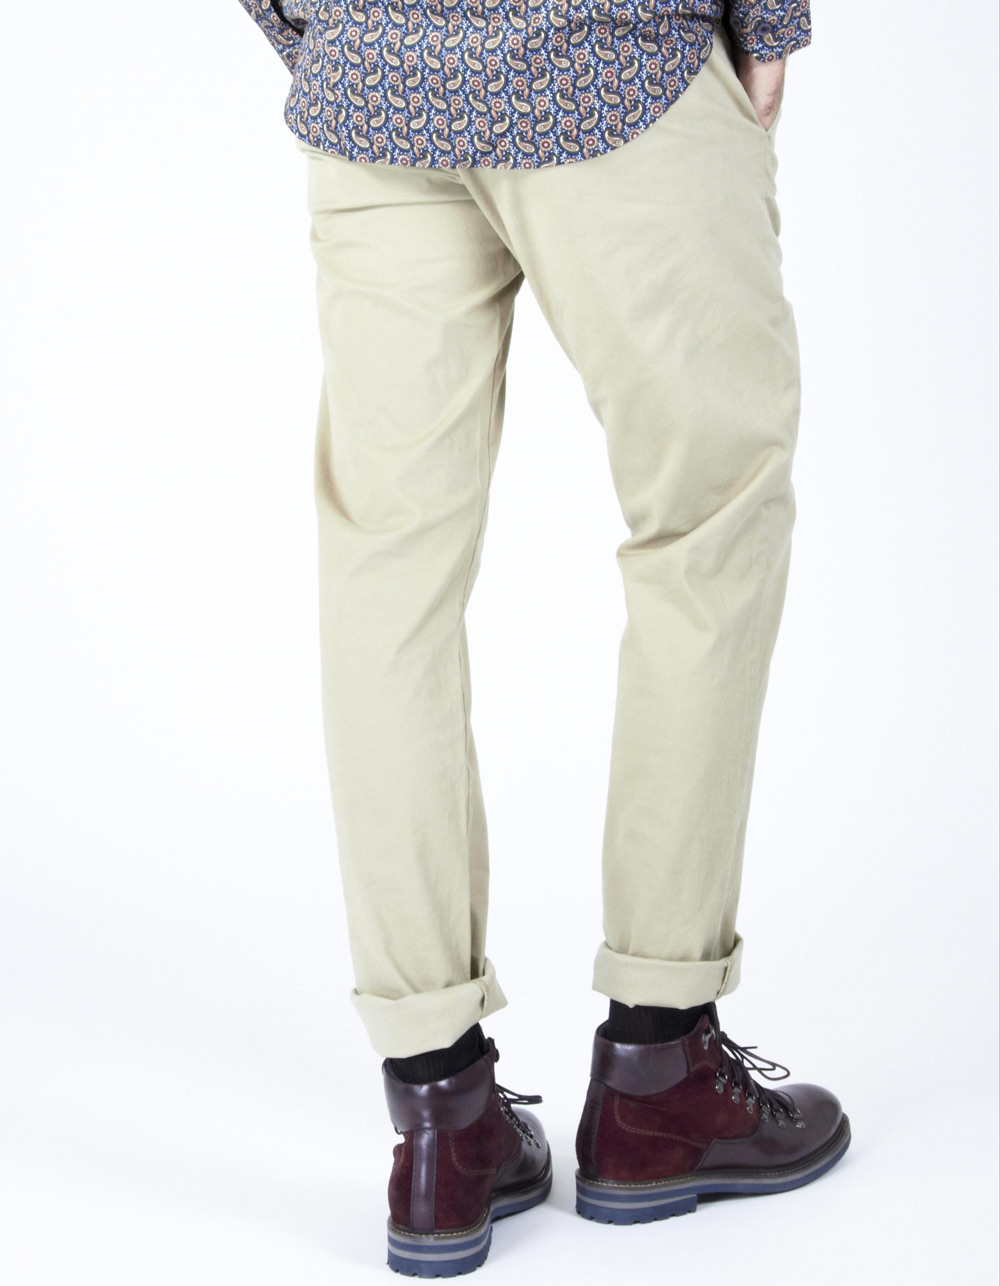 Beige chinos - Backside